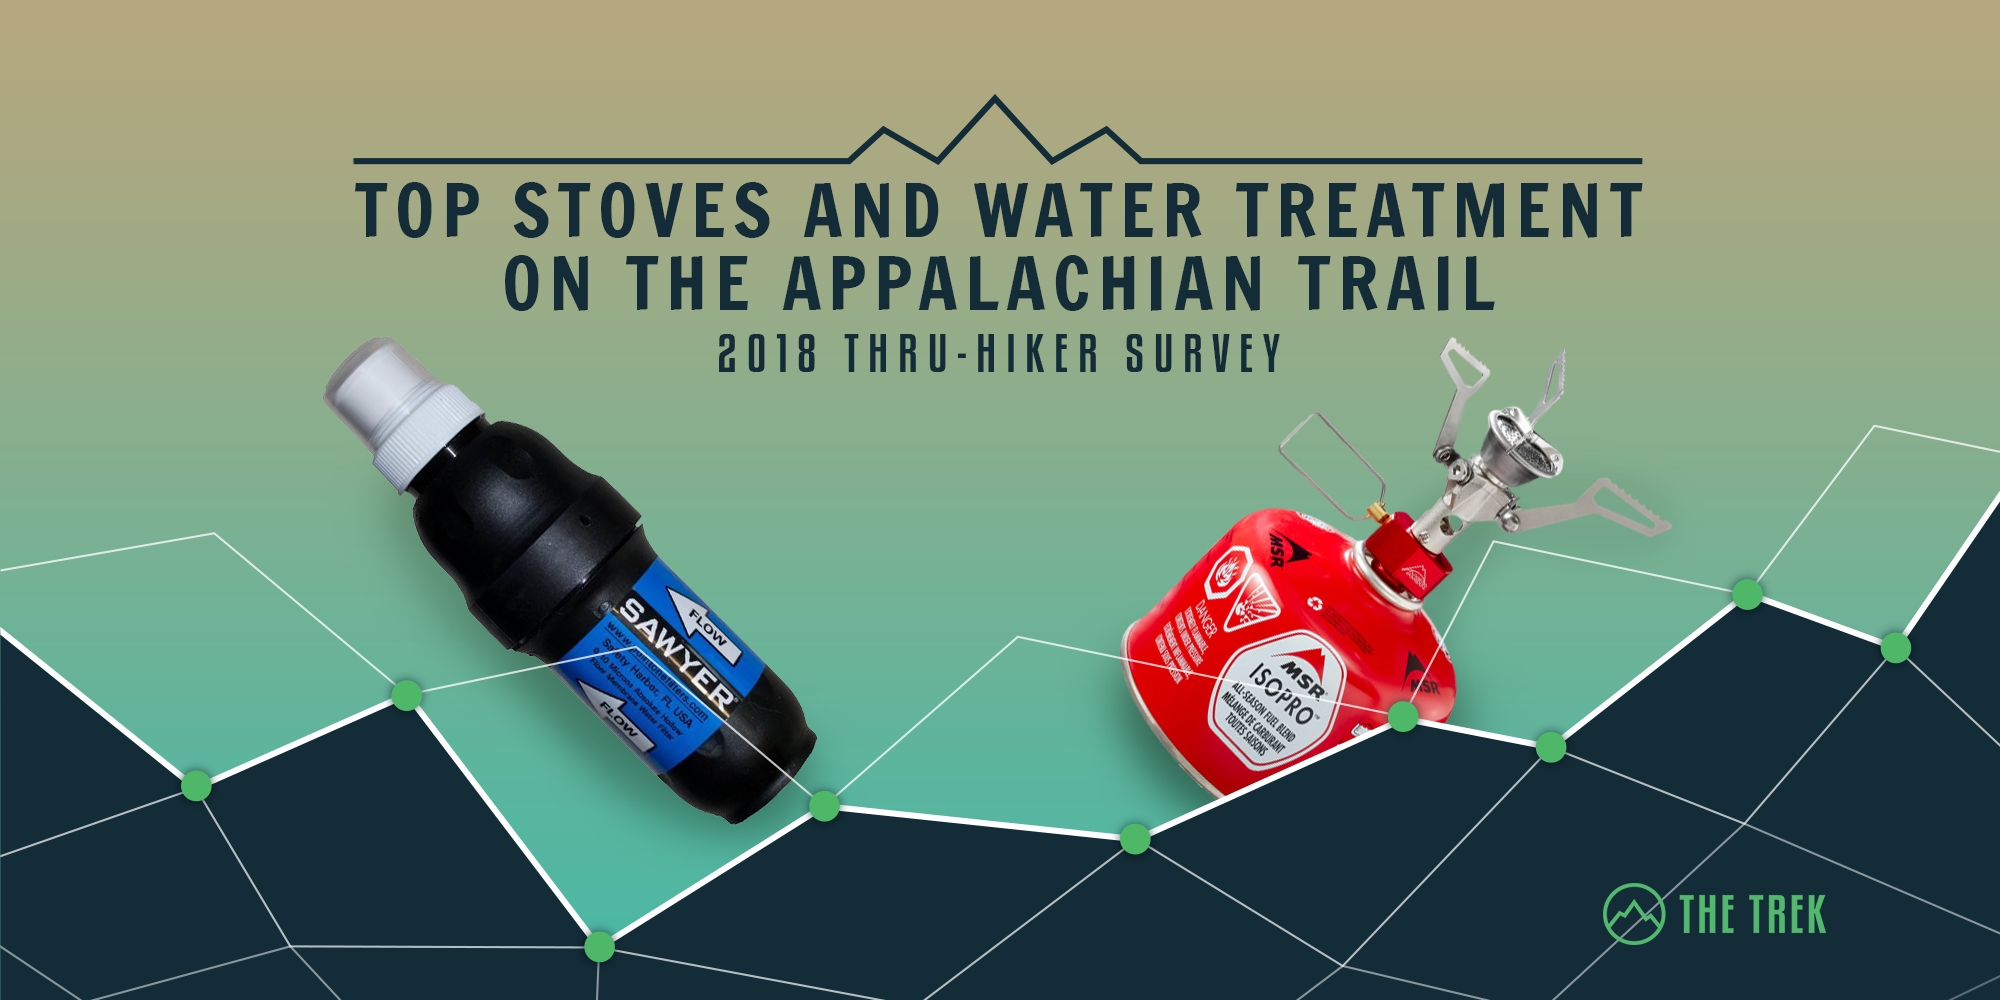 2018 Appalachian Trail Thru-Hiker Survey: Top Stoves and Water Treatments